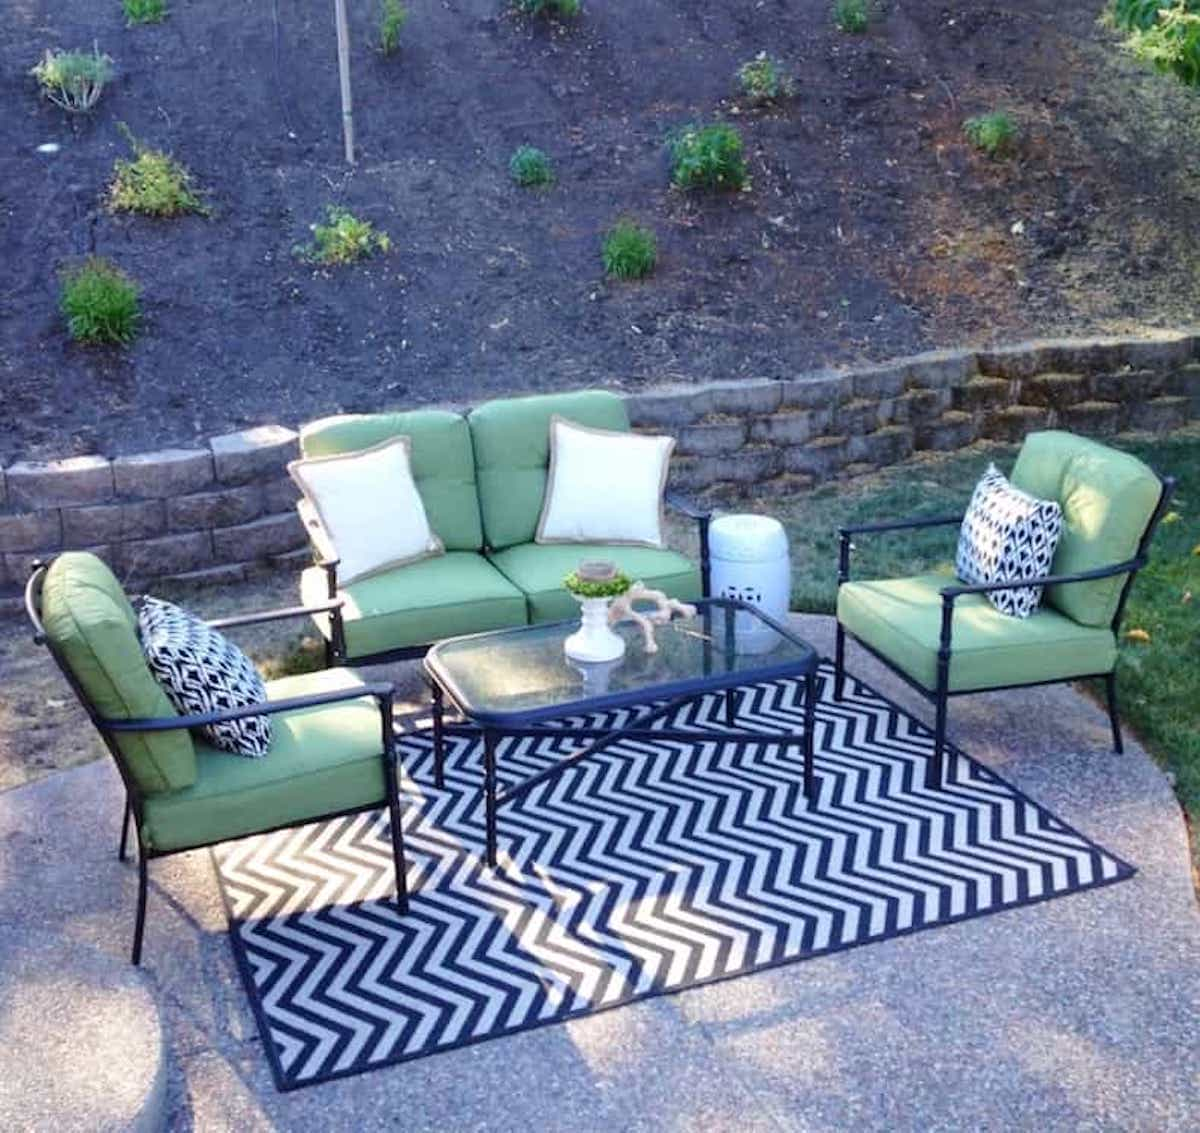 Black And White Geometric Pattern Small Outdoor Rugs For Patios (Image 2 of 15)